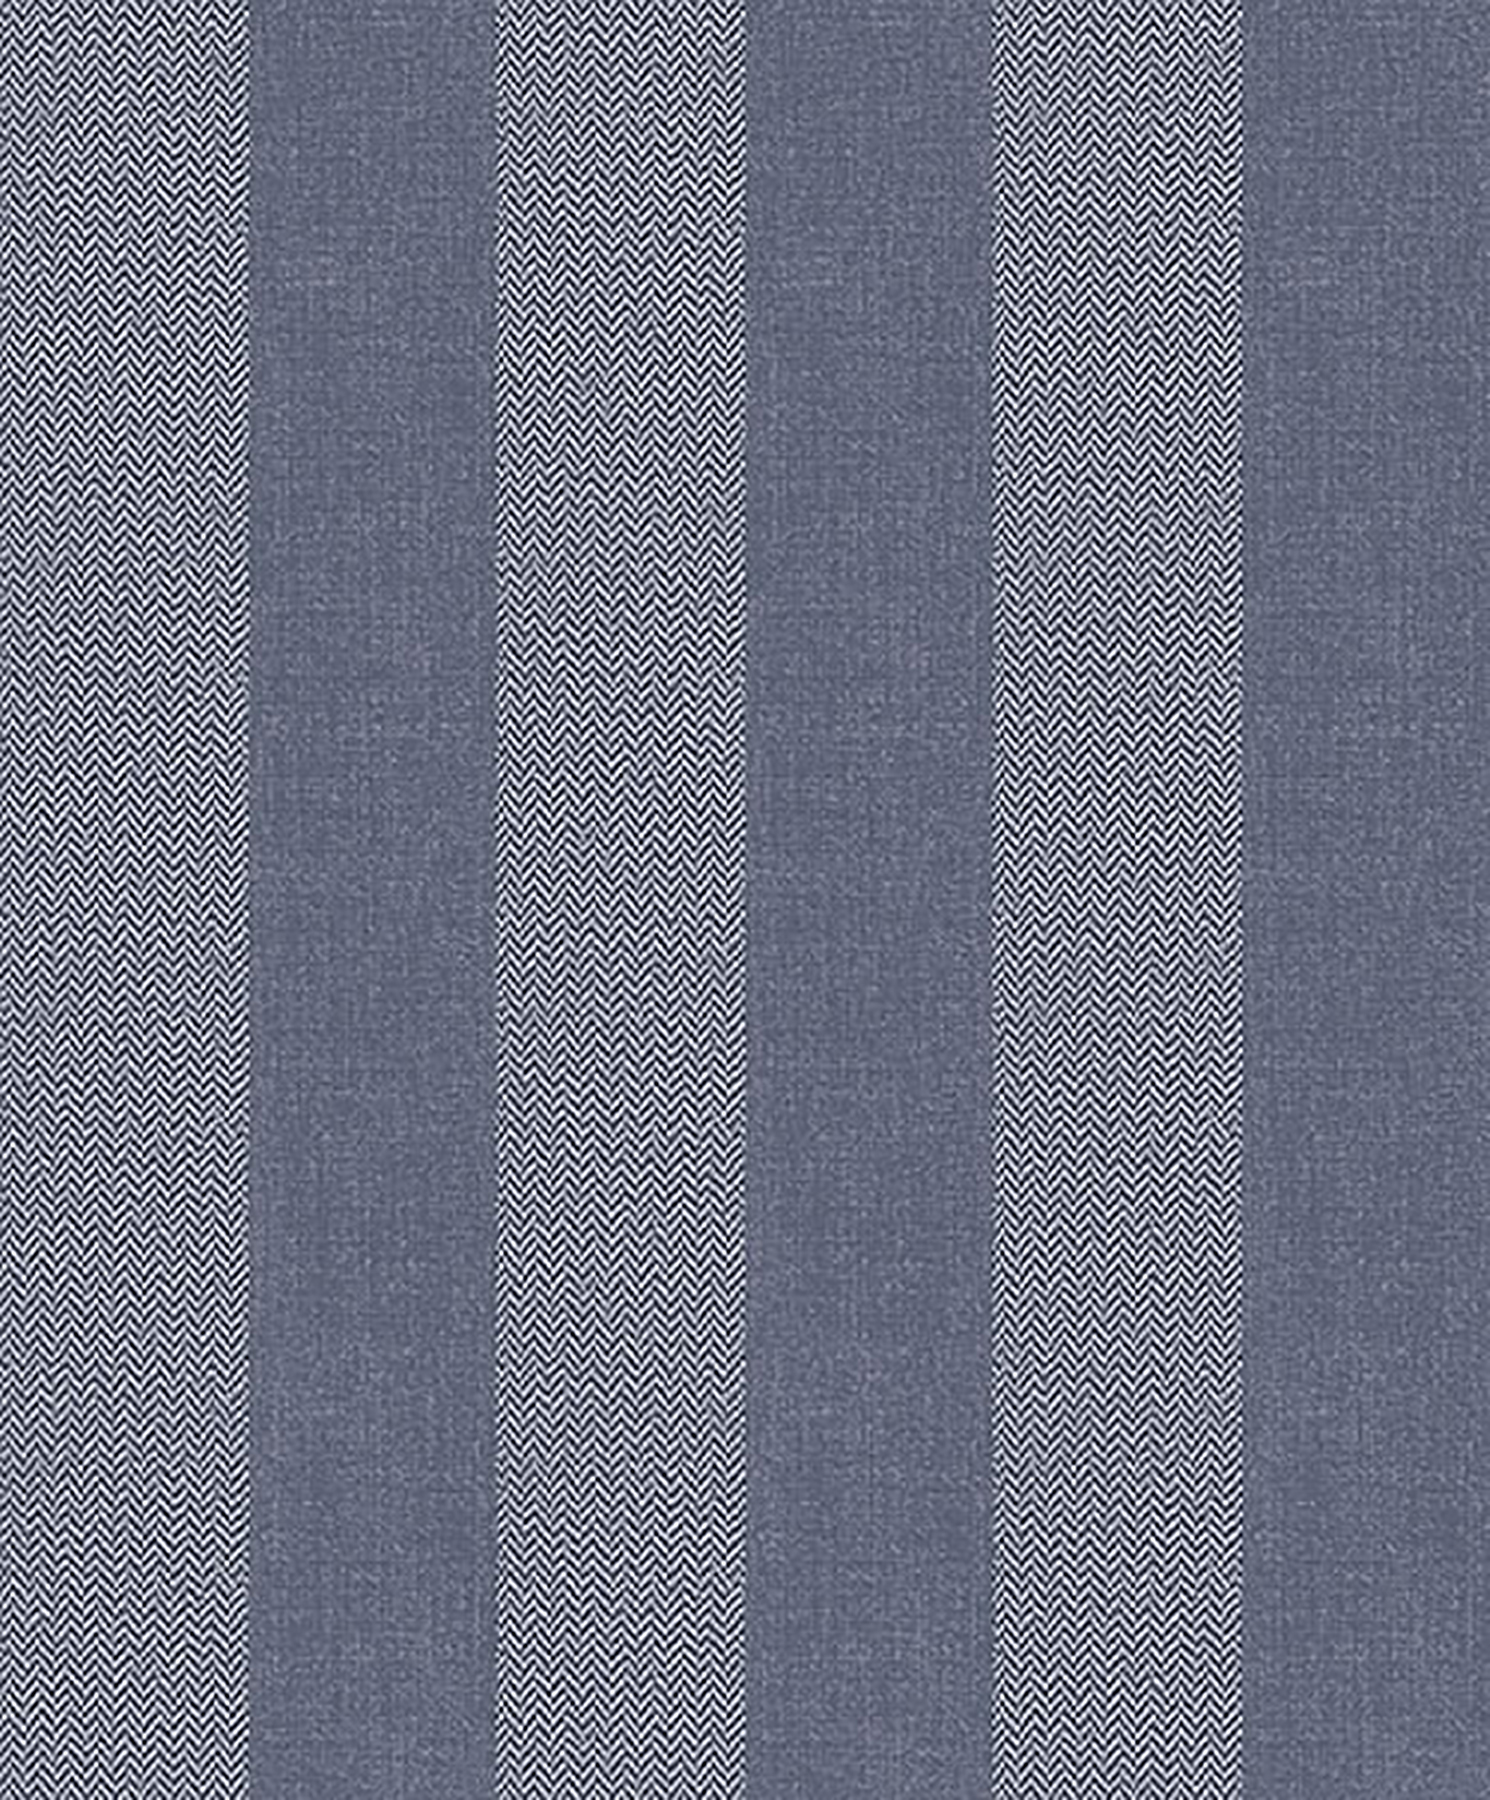 Picture of Audrey Blue Tweed Stripe Wallpaper